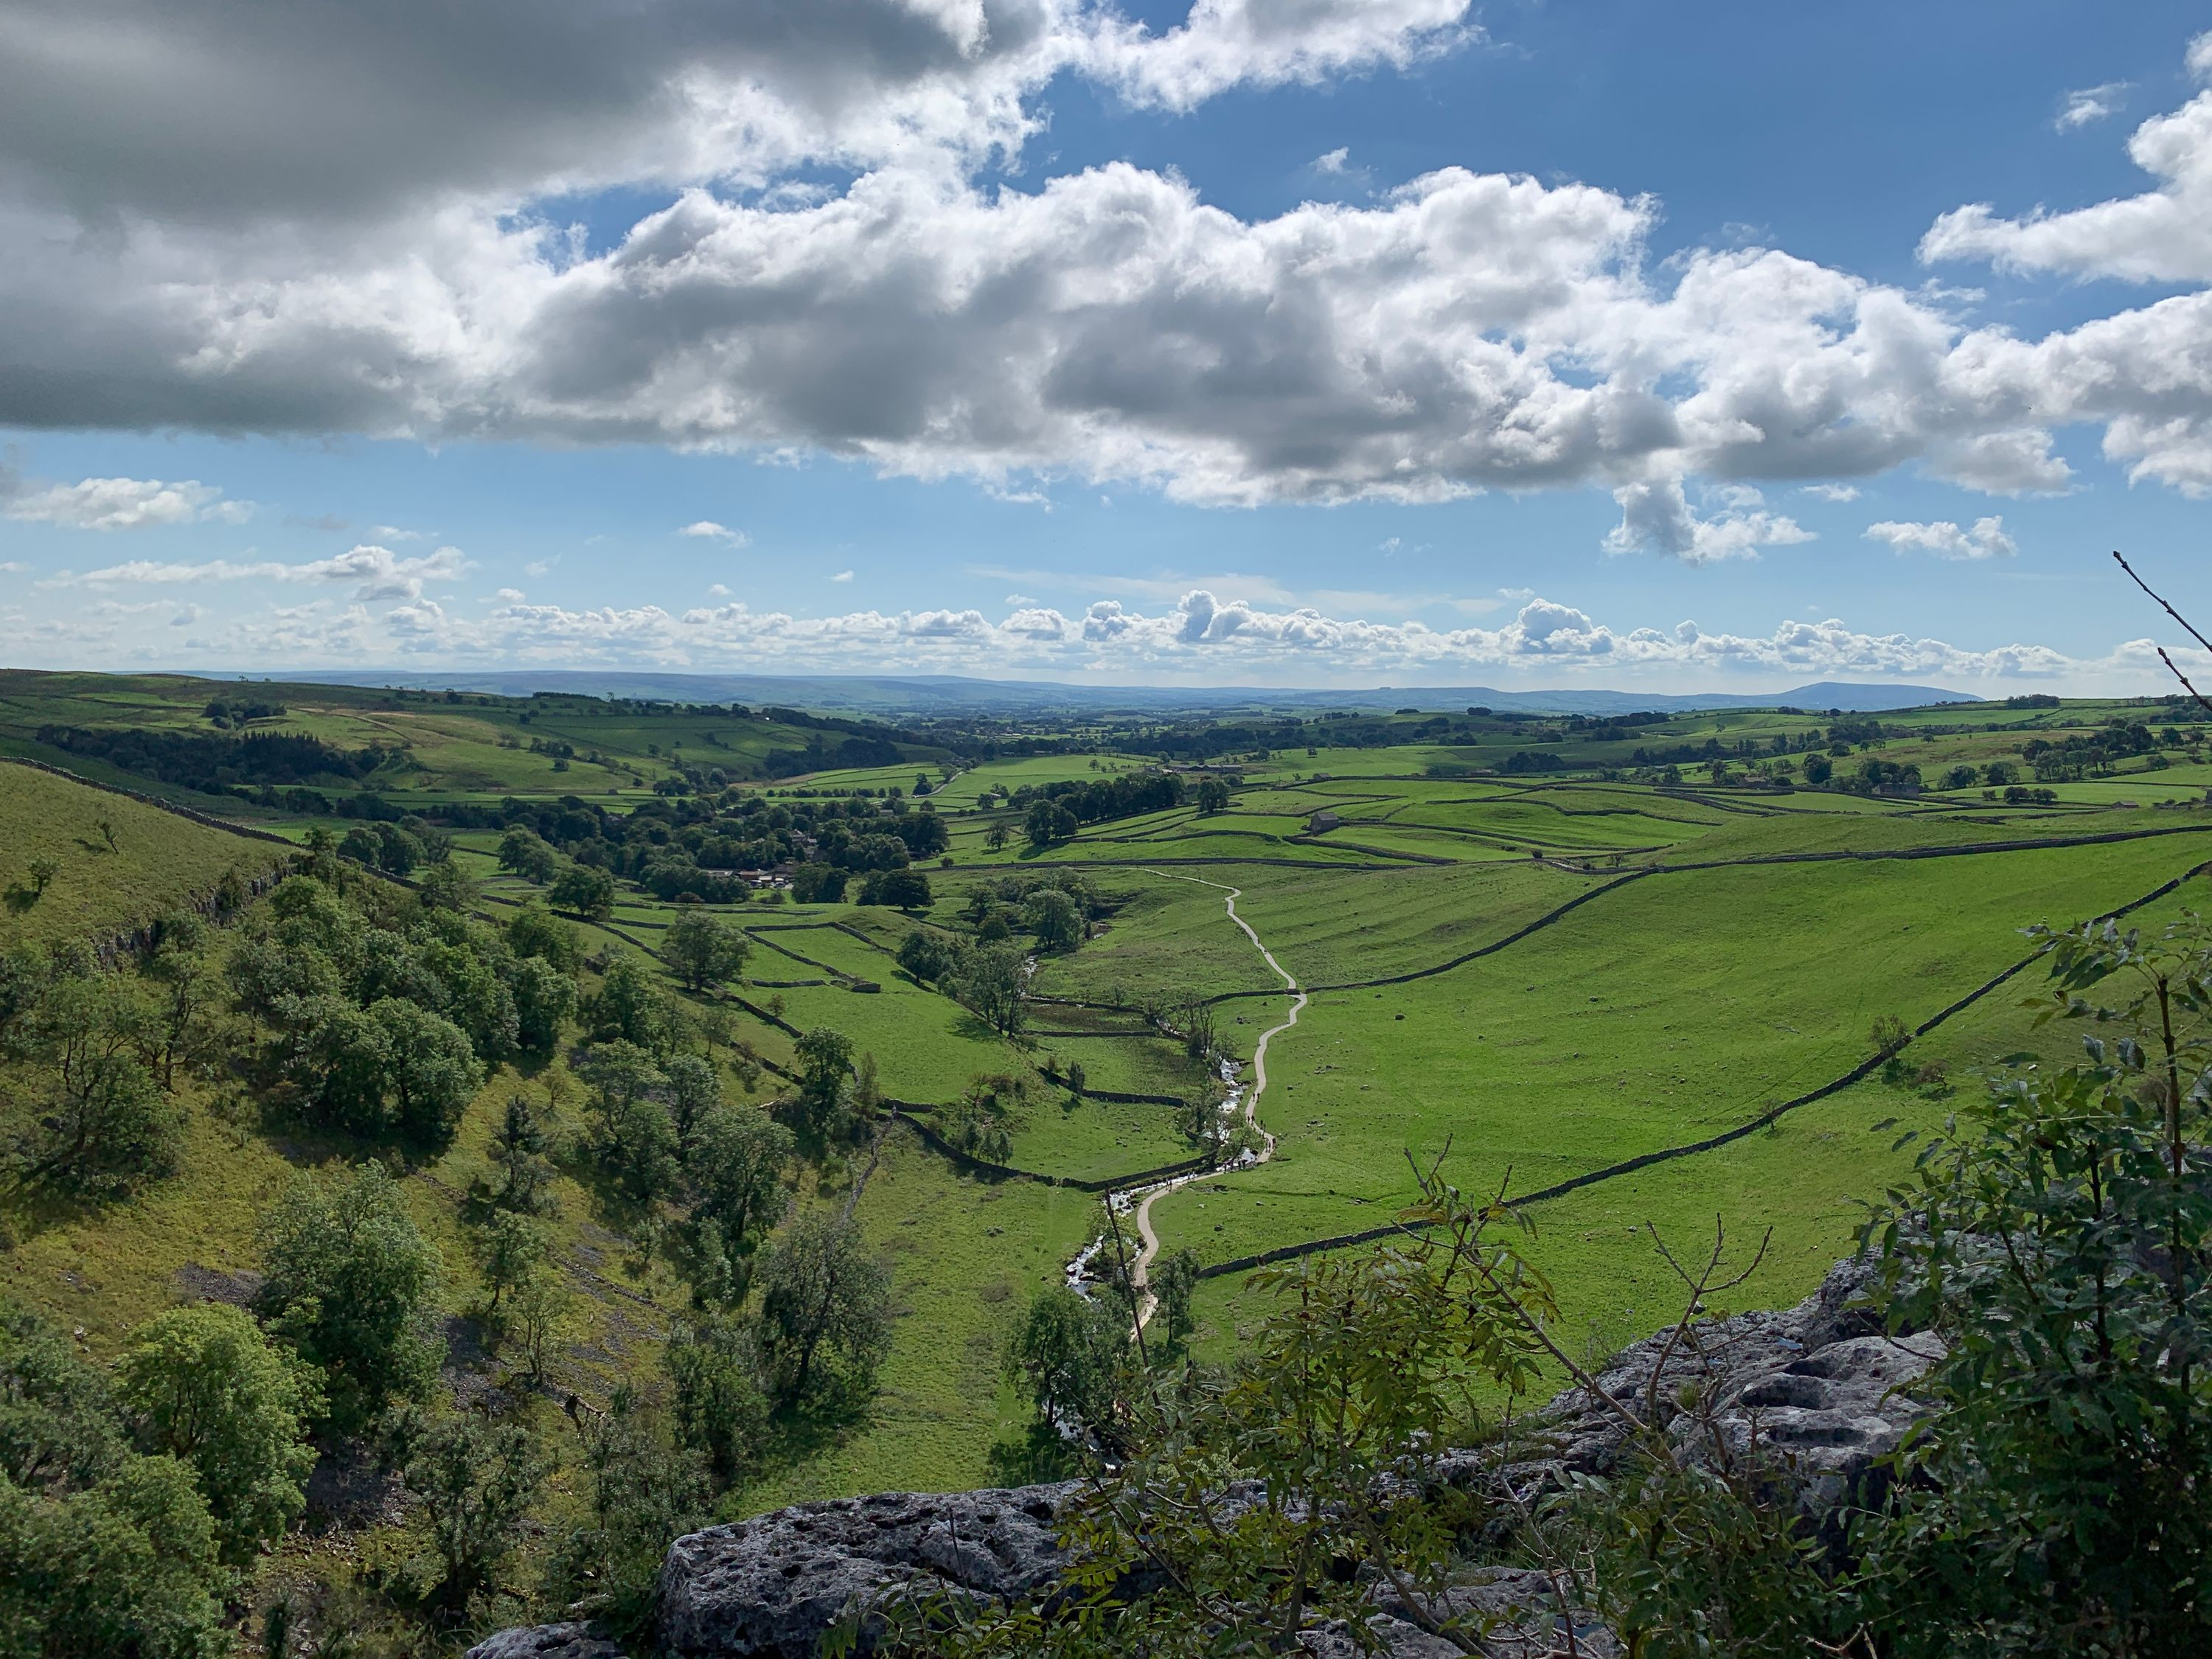 View from Malham Cove